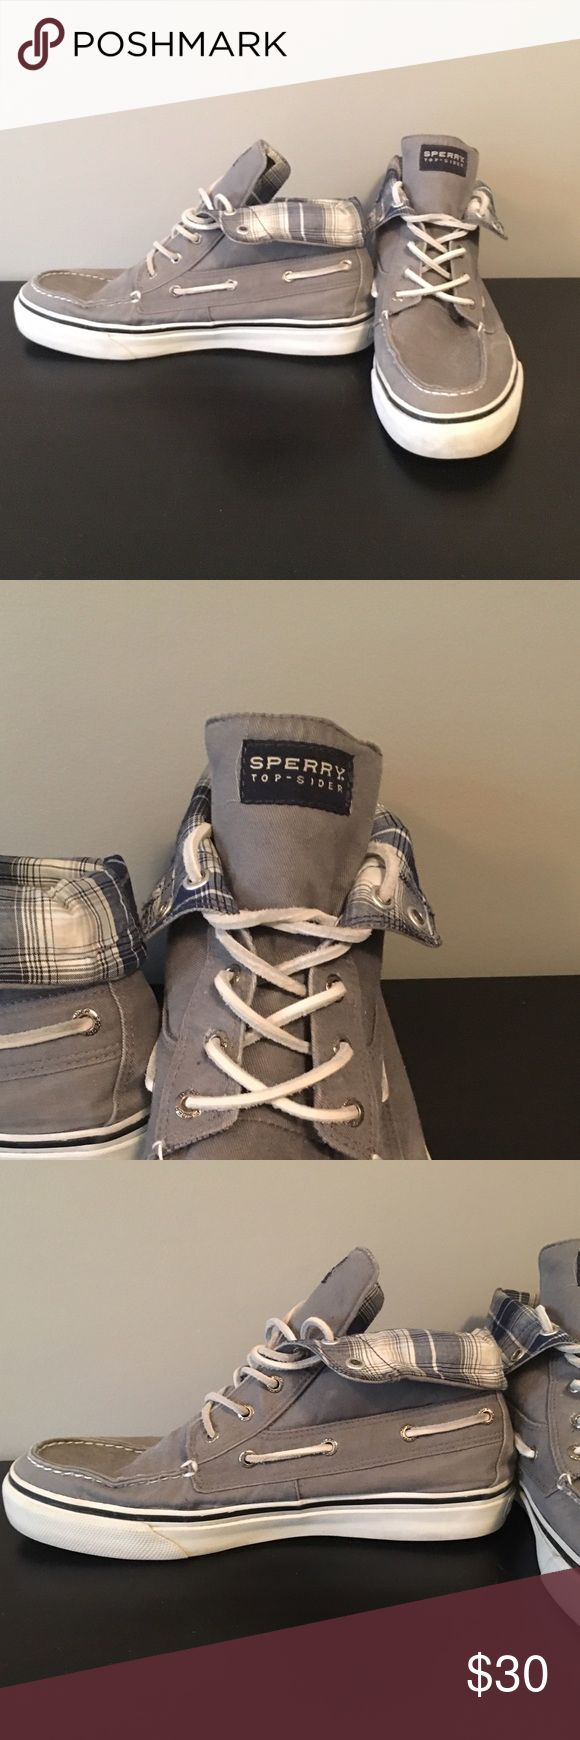 Hightop Sperry Boat shoes High top, plaid inside, barely worn, MAKE OFFER Sperry Shoes Boat Shoes